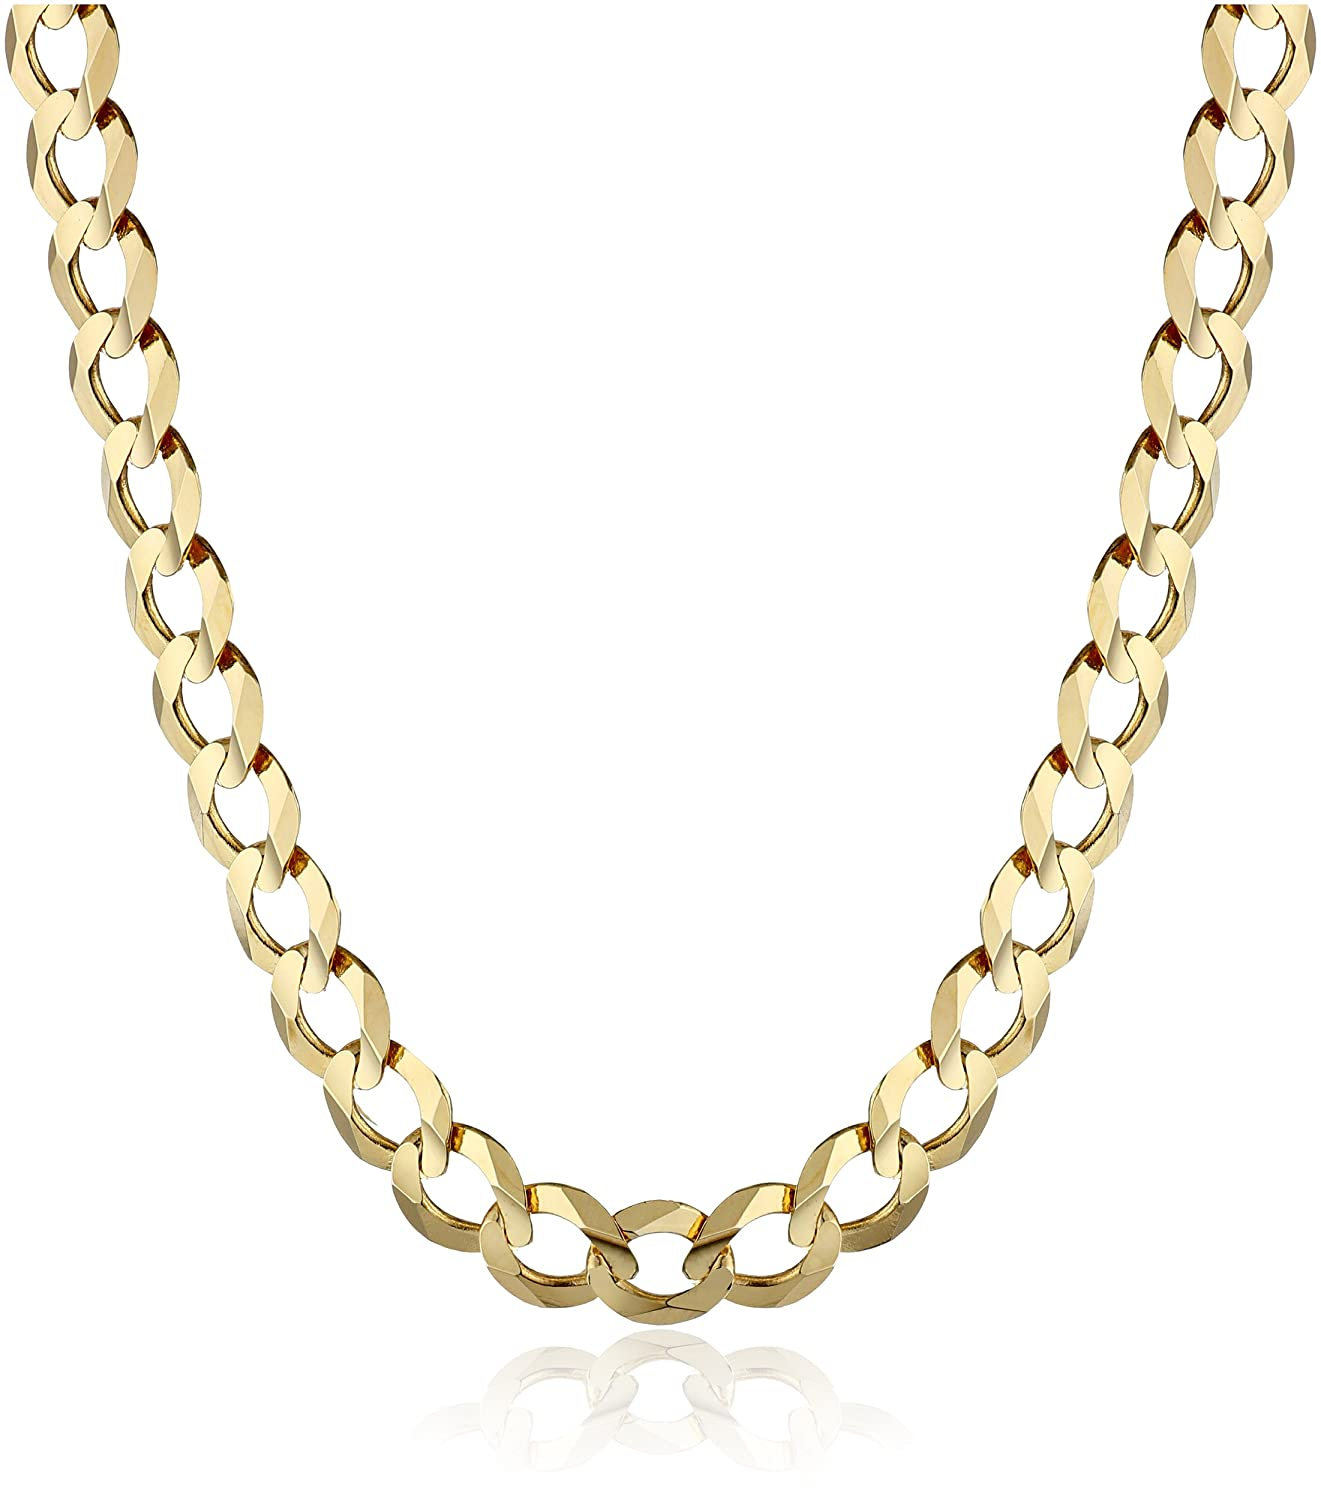 chain chains sits sterling or available in right extender constellation silver is necklace gold pin this fill long a